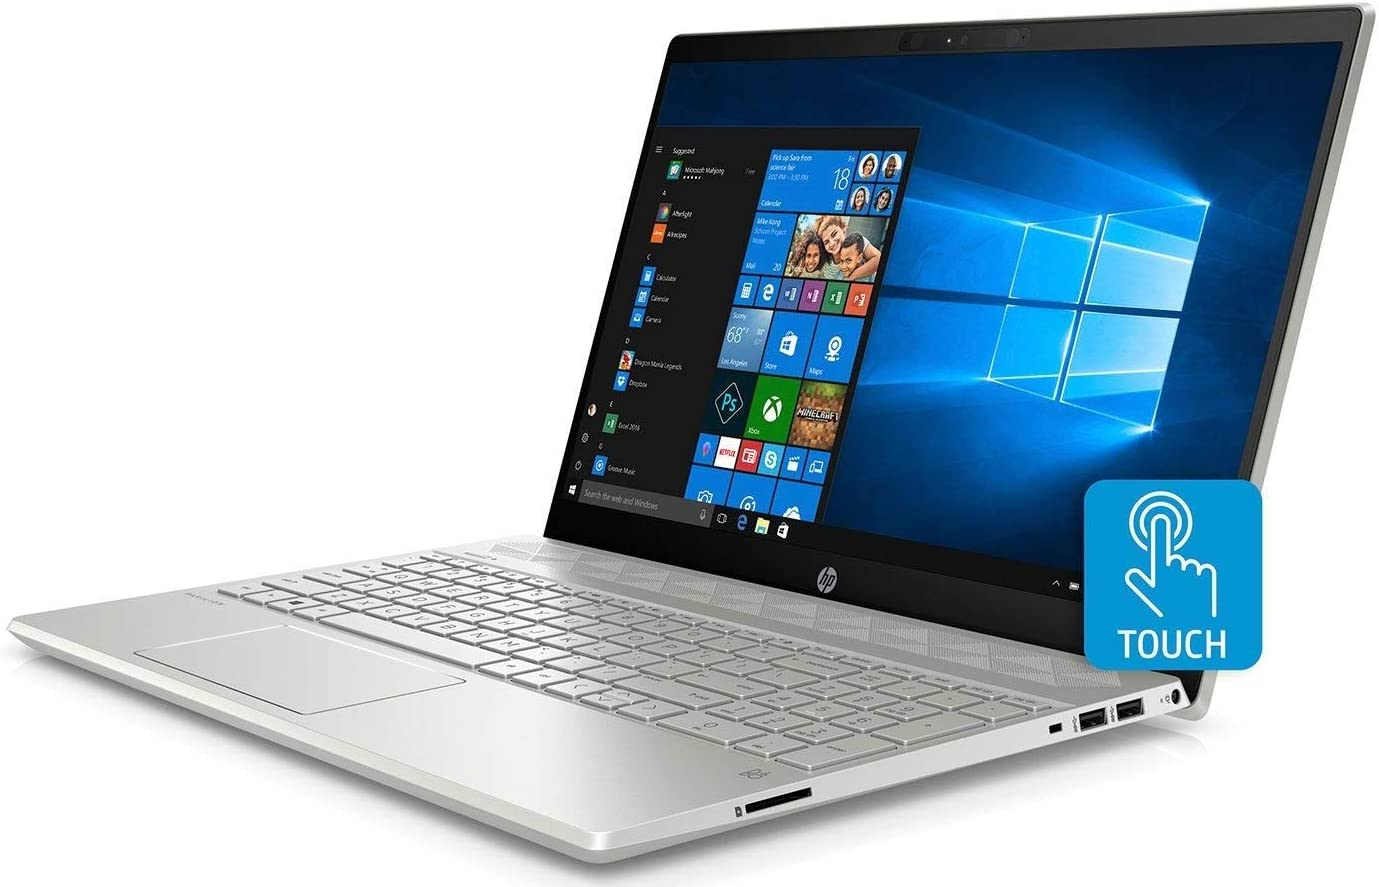 "2019 HP Pavilion Flagship 15.6"" Full HD IPS Touchscreen Laptop, Intel Quad Core i7-8550U, 12GB DDR4 Memory, 256GB SSD Boot + 1TB HDD, USB-C, Bluetooth, WiFi, Backlit Keyboard, Windows 10, Silver"